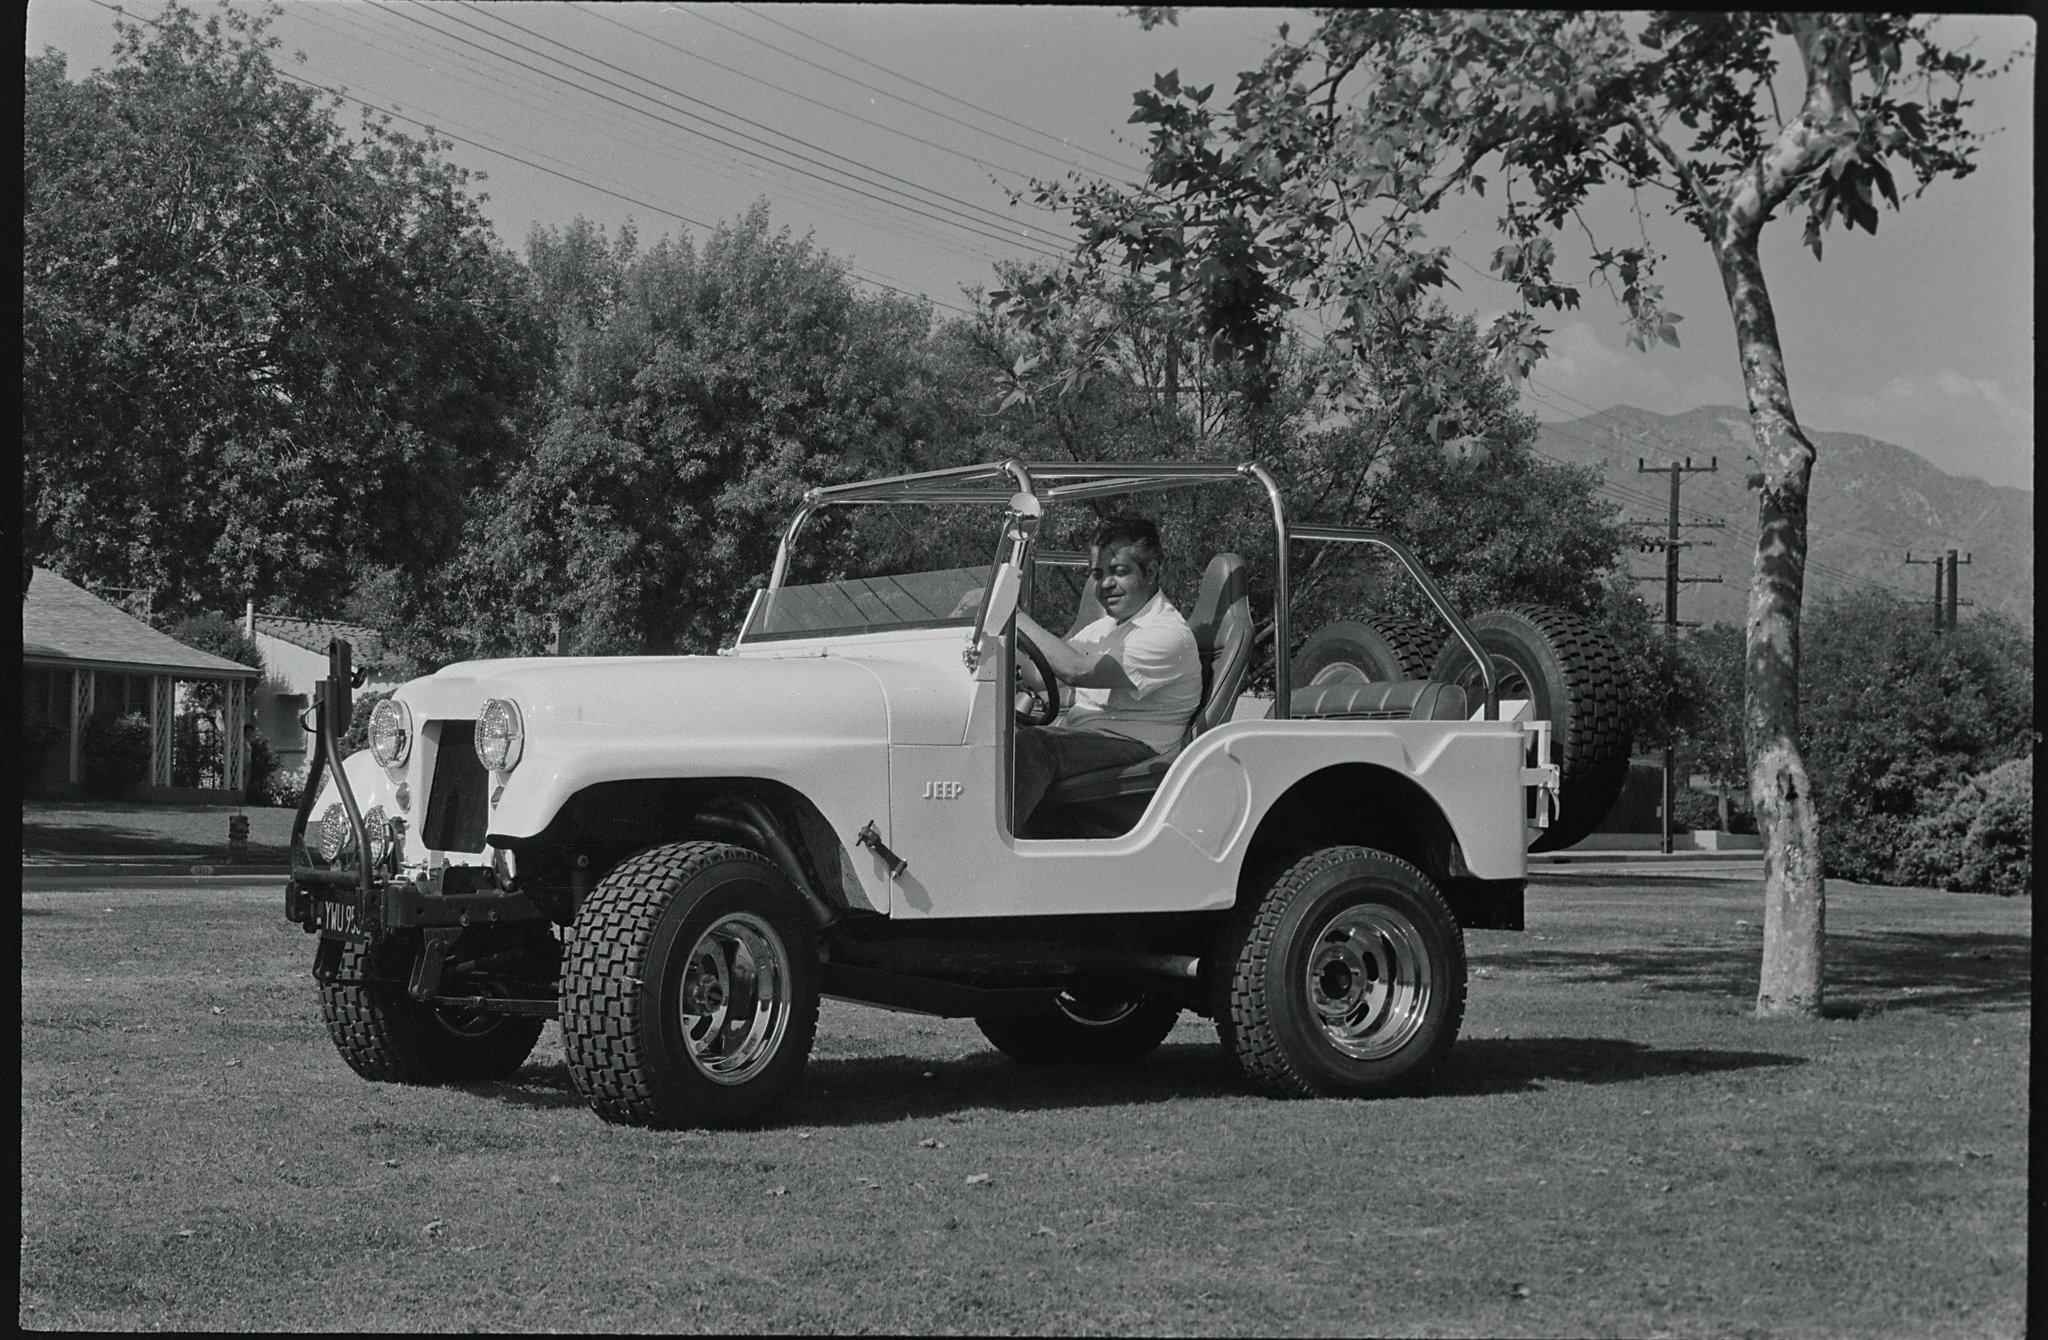 In its first, or competition, form, Super Jeep was equipped with a fiberglas sic hood and fender unit. Though light and strong, the owner decided that the steel stock pieces were what he wanted.